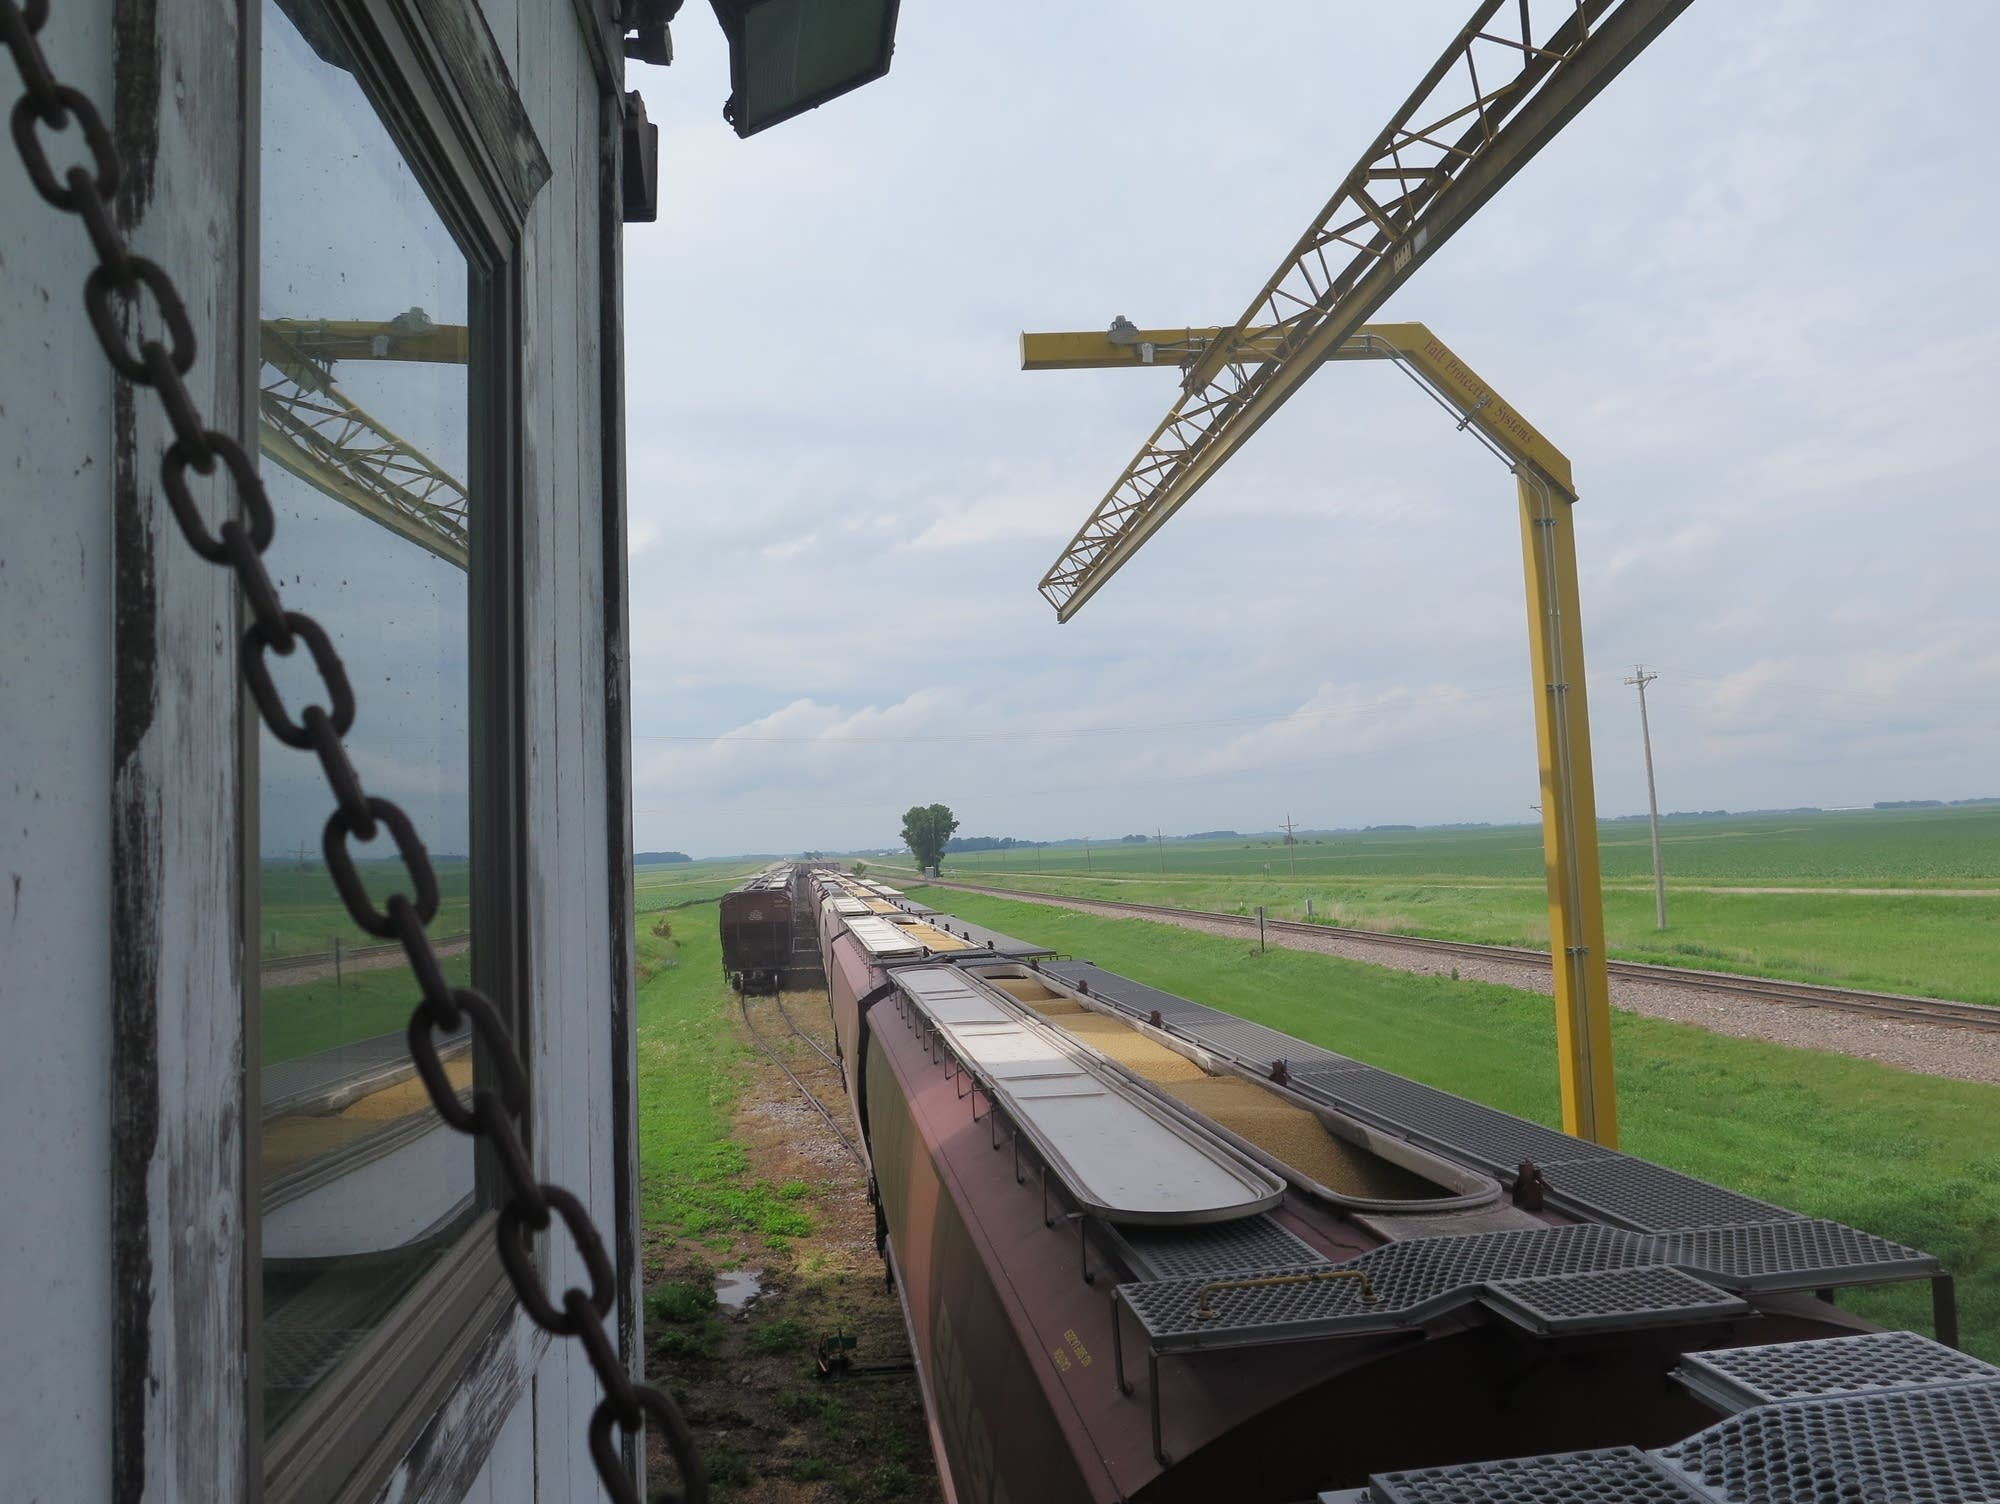 Soybeans are loaded onto a train at the Farmers Cooperative Elevator